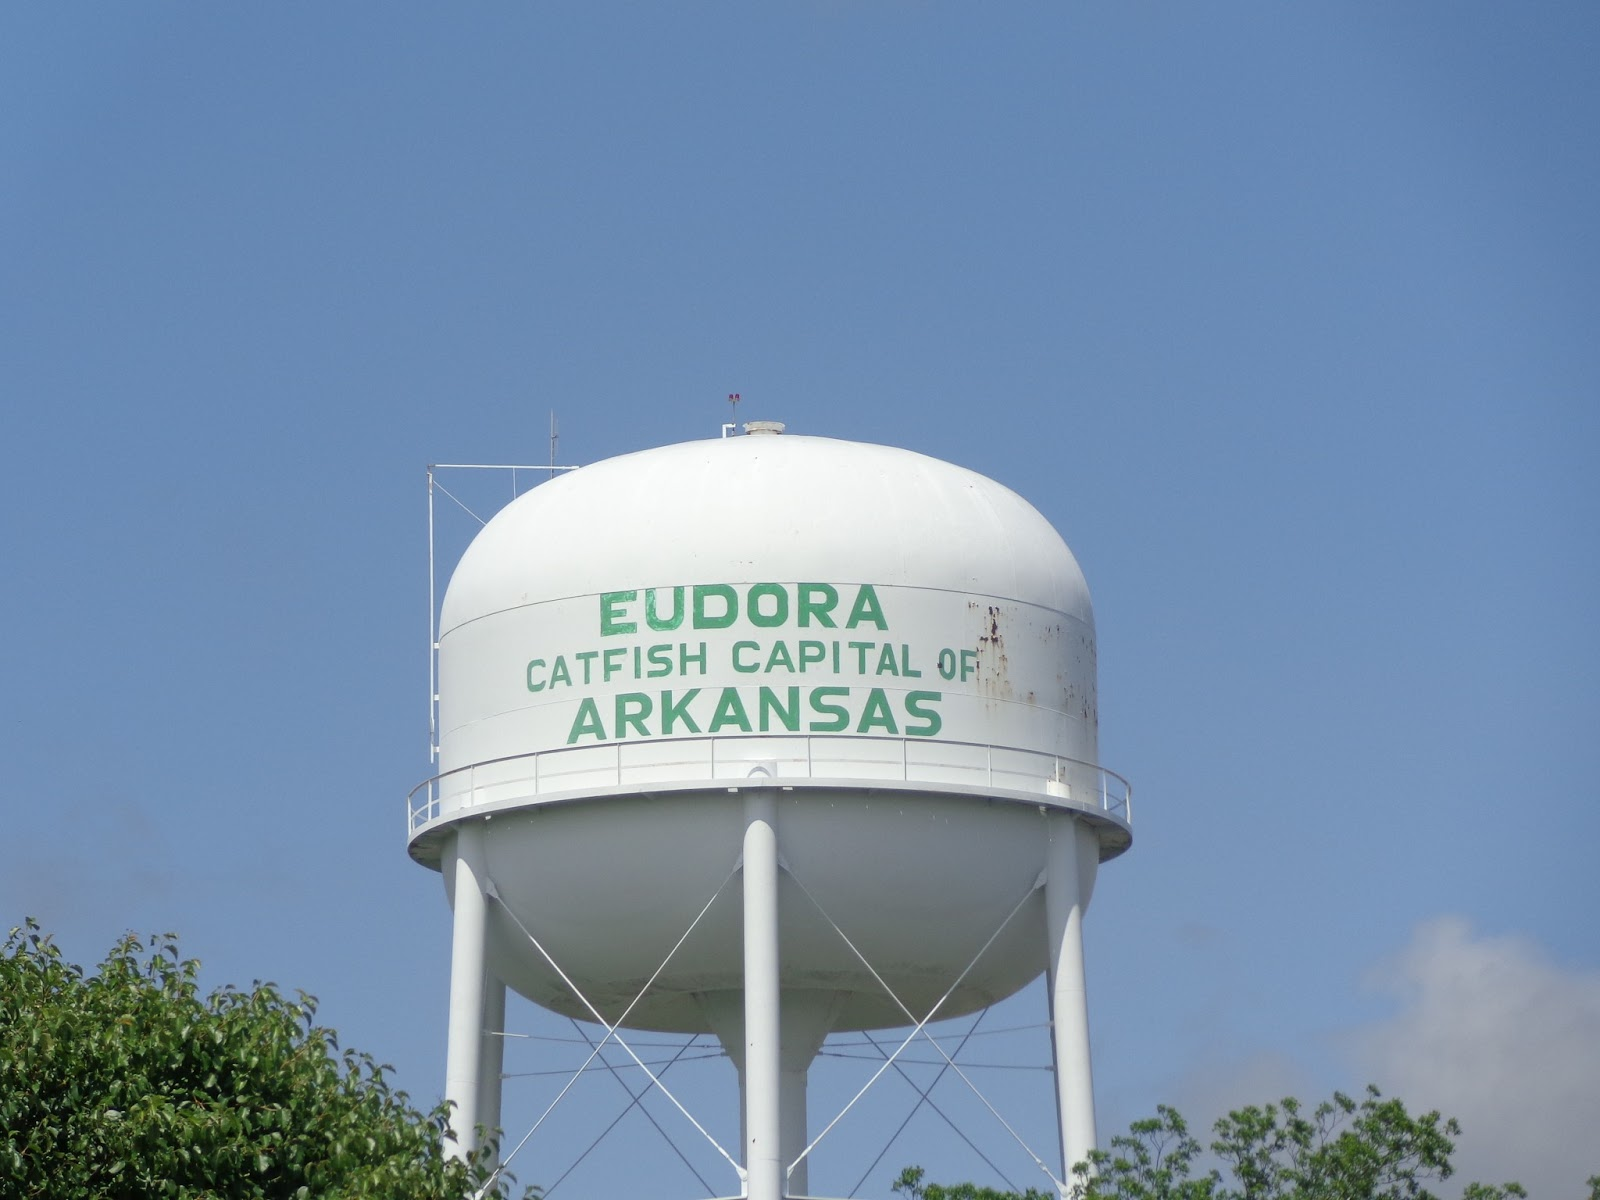 we rode out of eudora the catfish capital of arkansas the road we planned to ride a secondary paved road according to the map does not exist